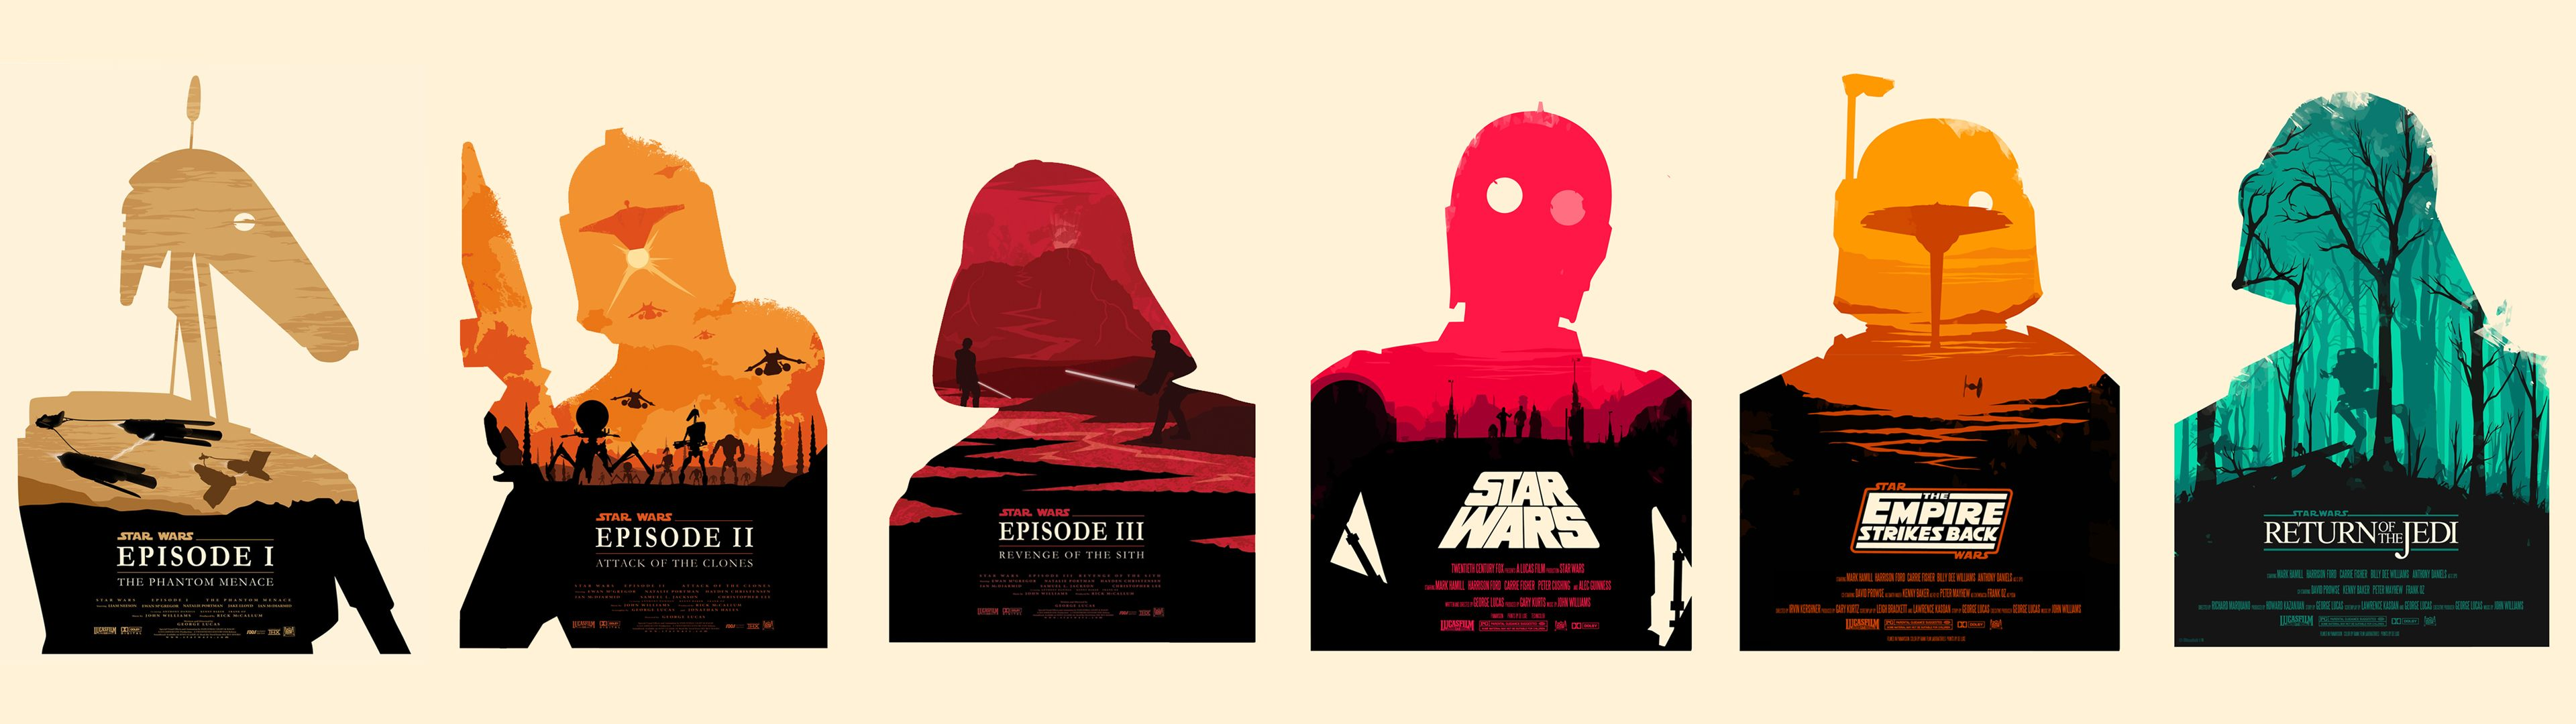 Dual Monitor Star Wars Posters 3840x1080 Star Wars Poster